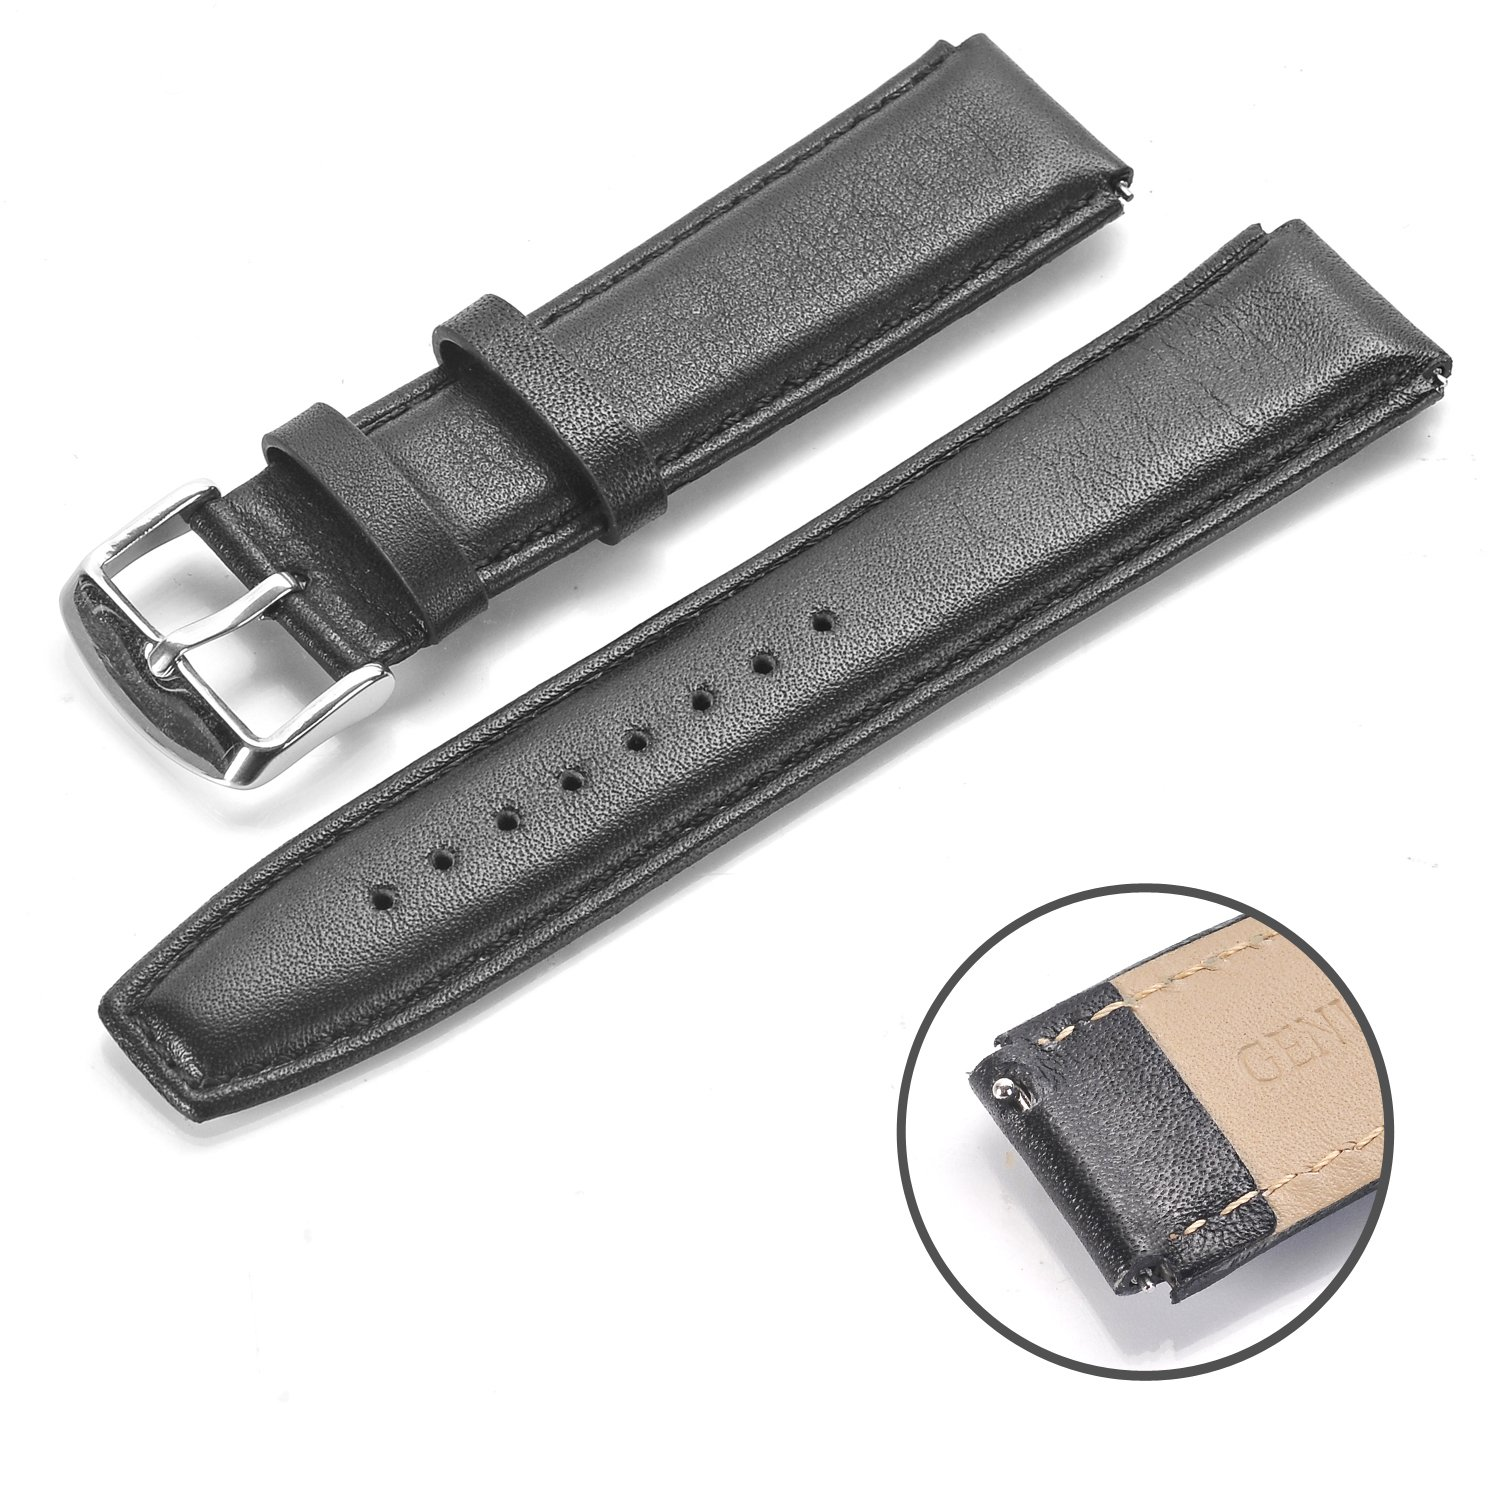 Rerii Huawei Watch Band Strap 18mm Width, Quick-Release, Leather Band, Strap for Huawei Smart Watch, Huawei Fit Watch